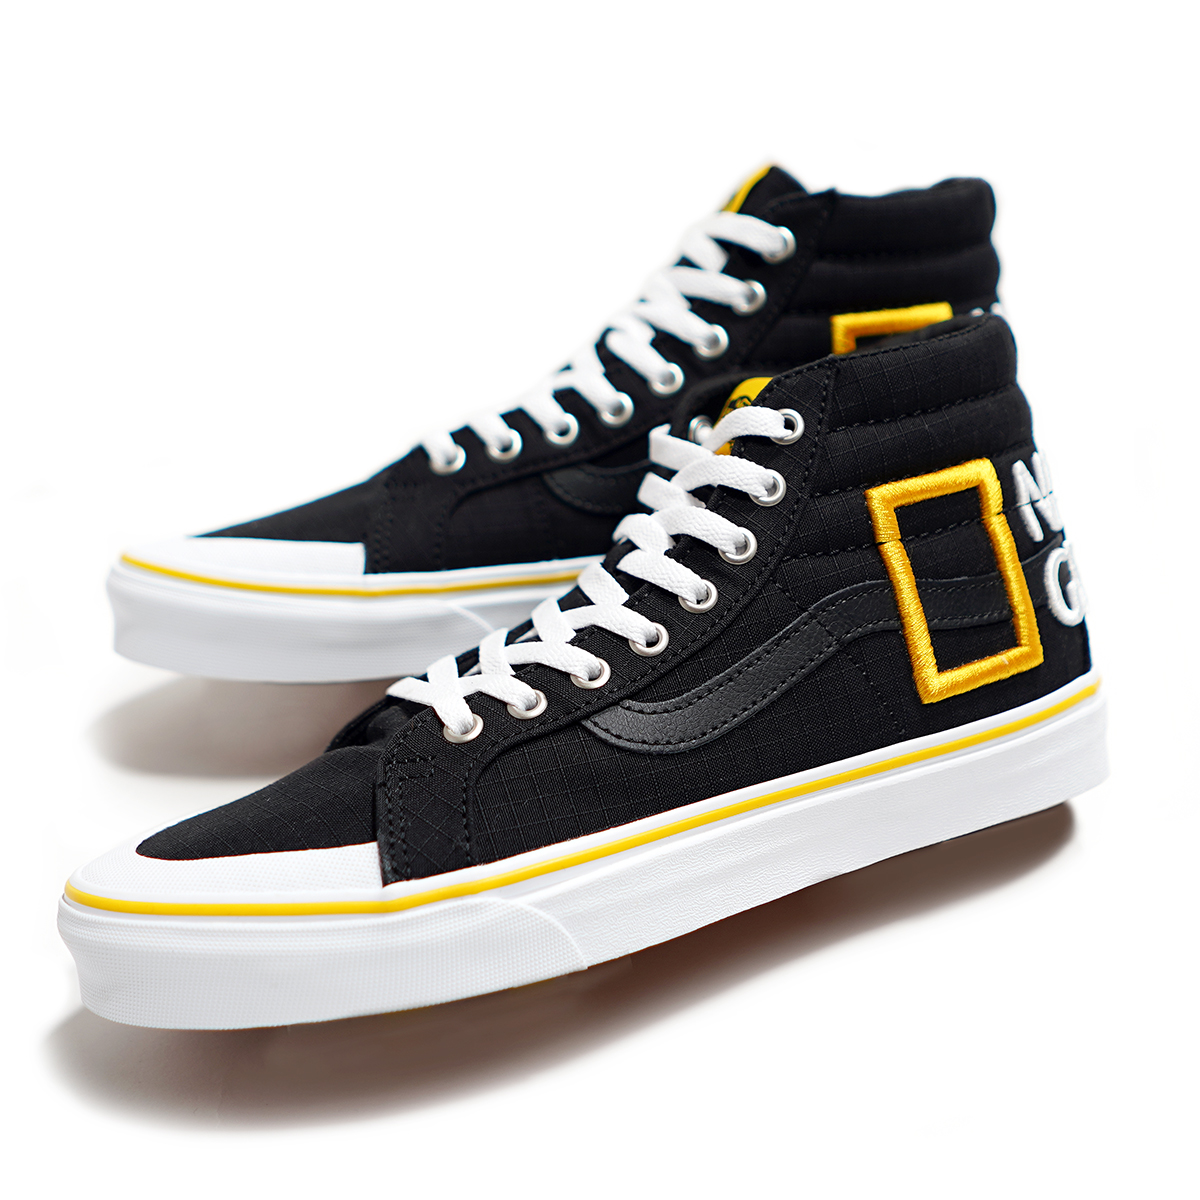 NATIONAL GEOGRAPHIC SK8-HI REISSUE OLD